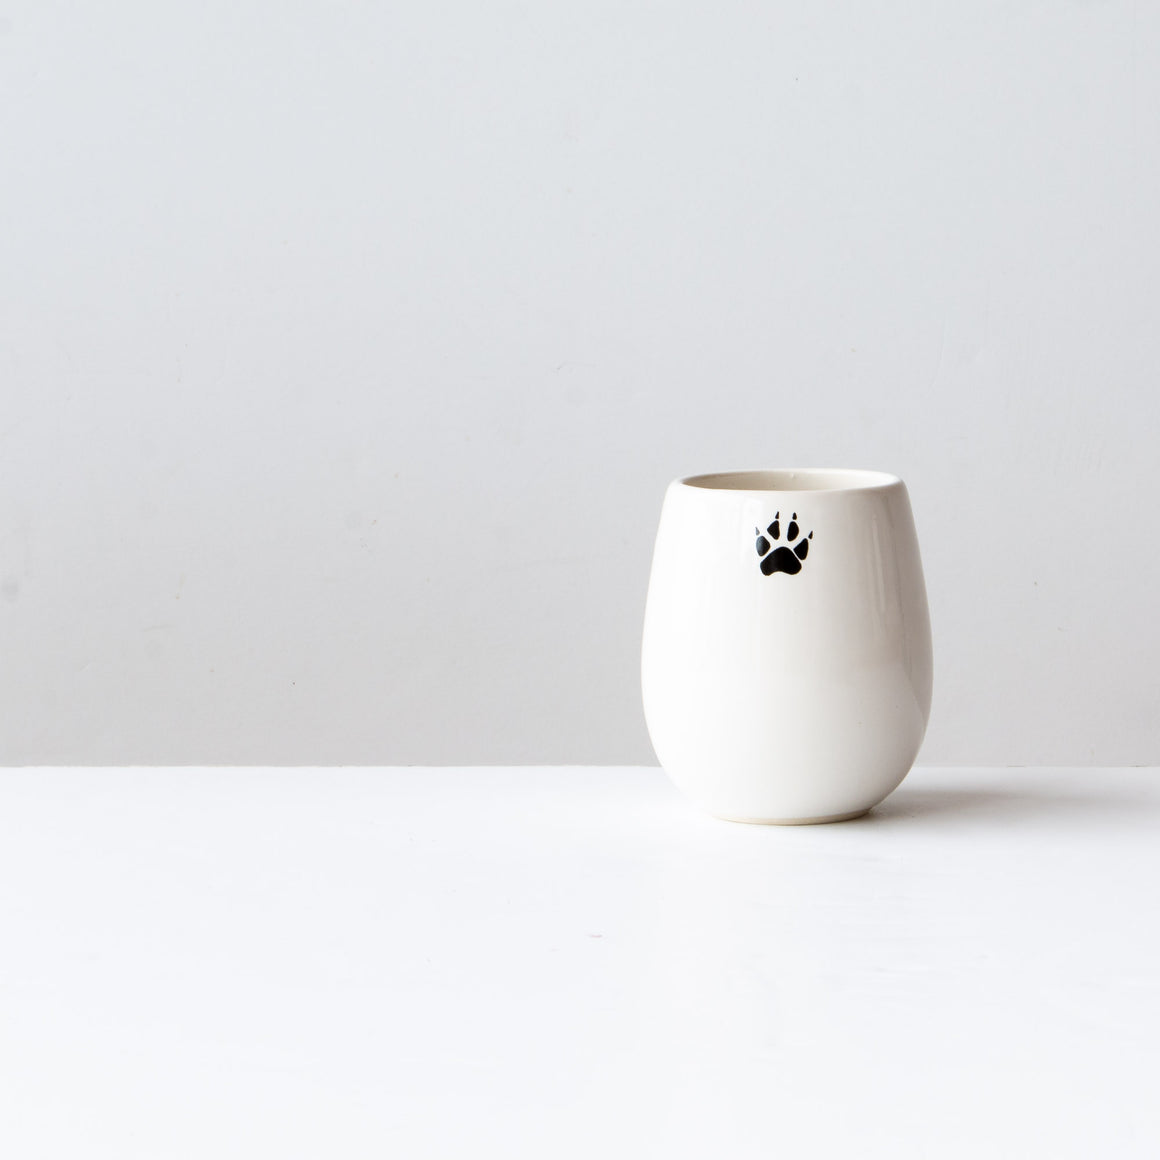 The Wolf - Handthrown Porcelain Wine Glass - Sold by Chic & Basta